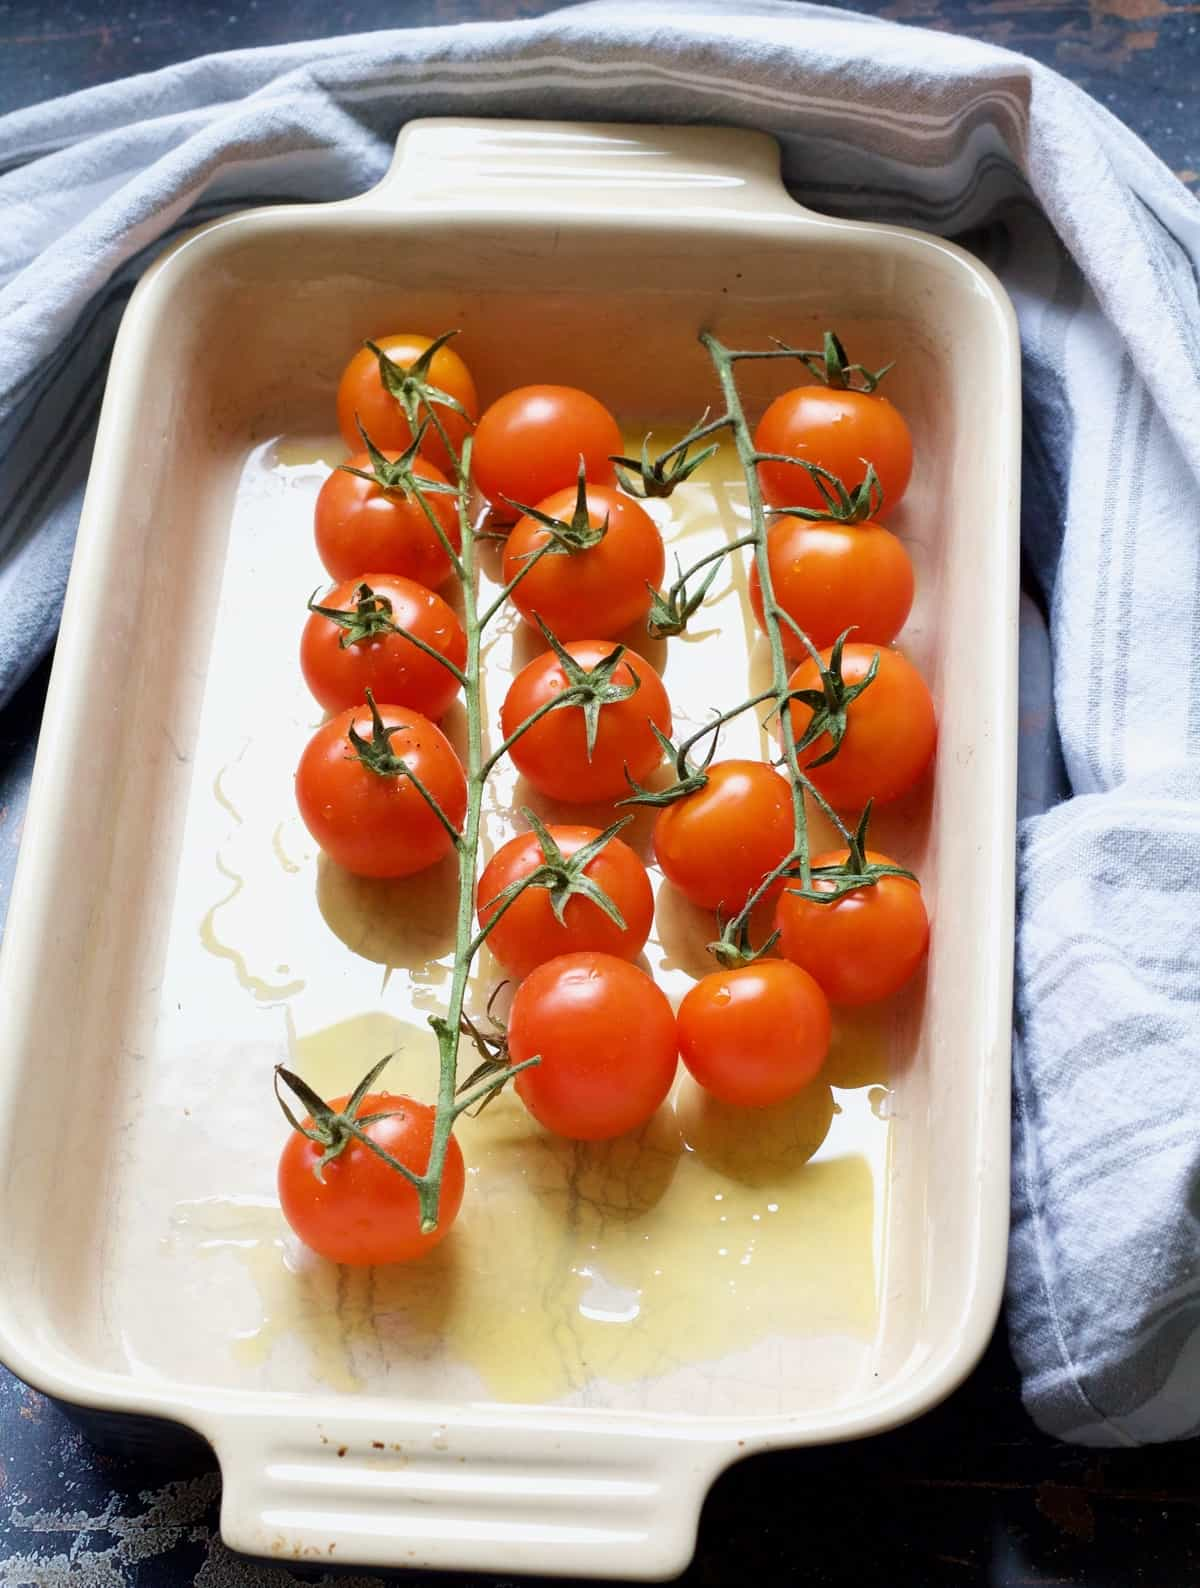 Cherry tomatoes in a baking dish.